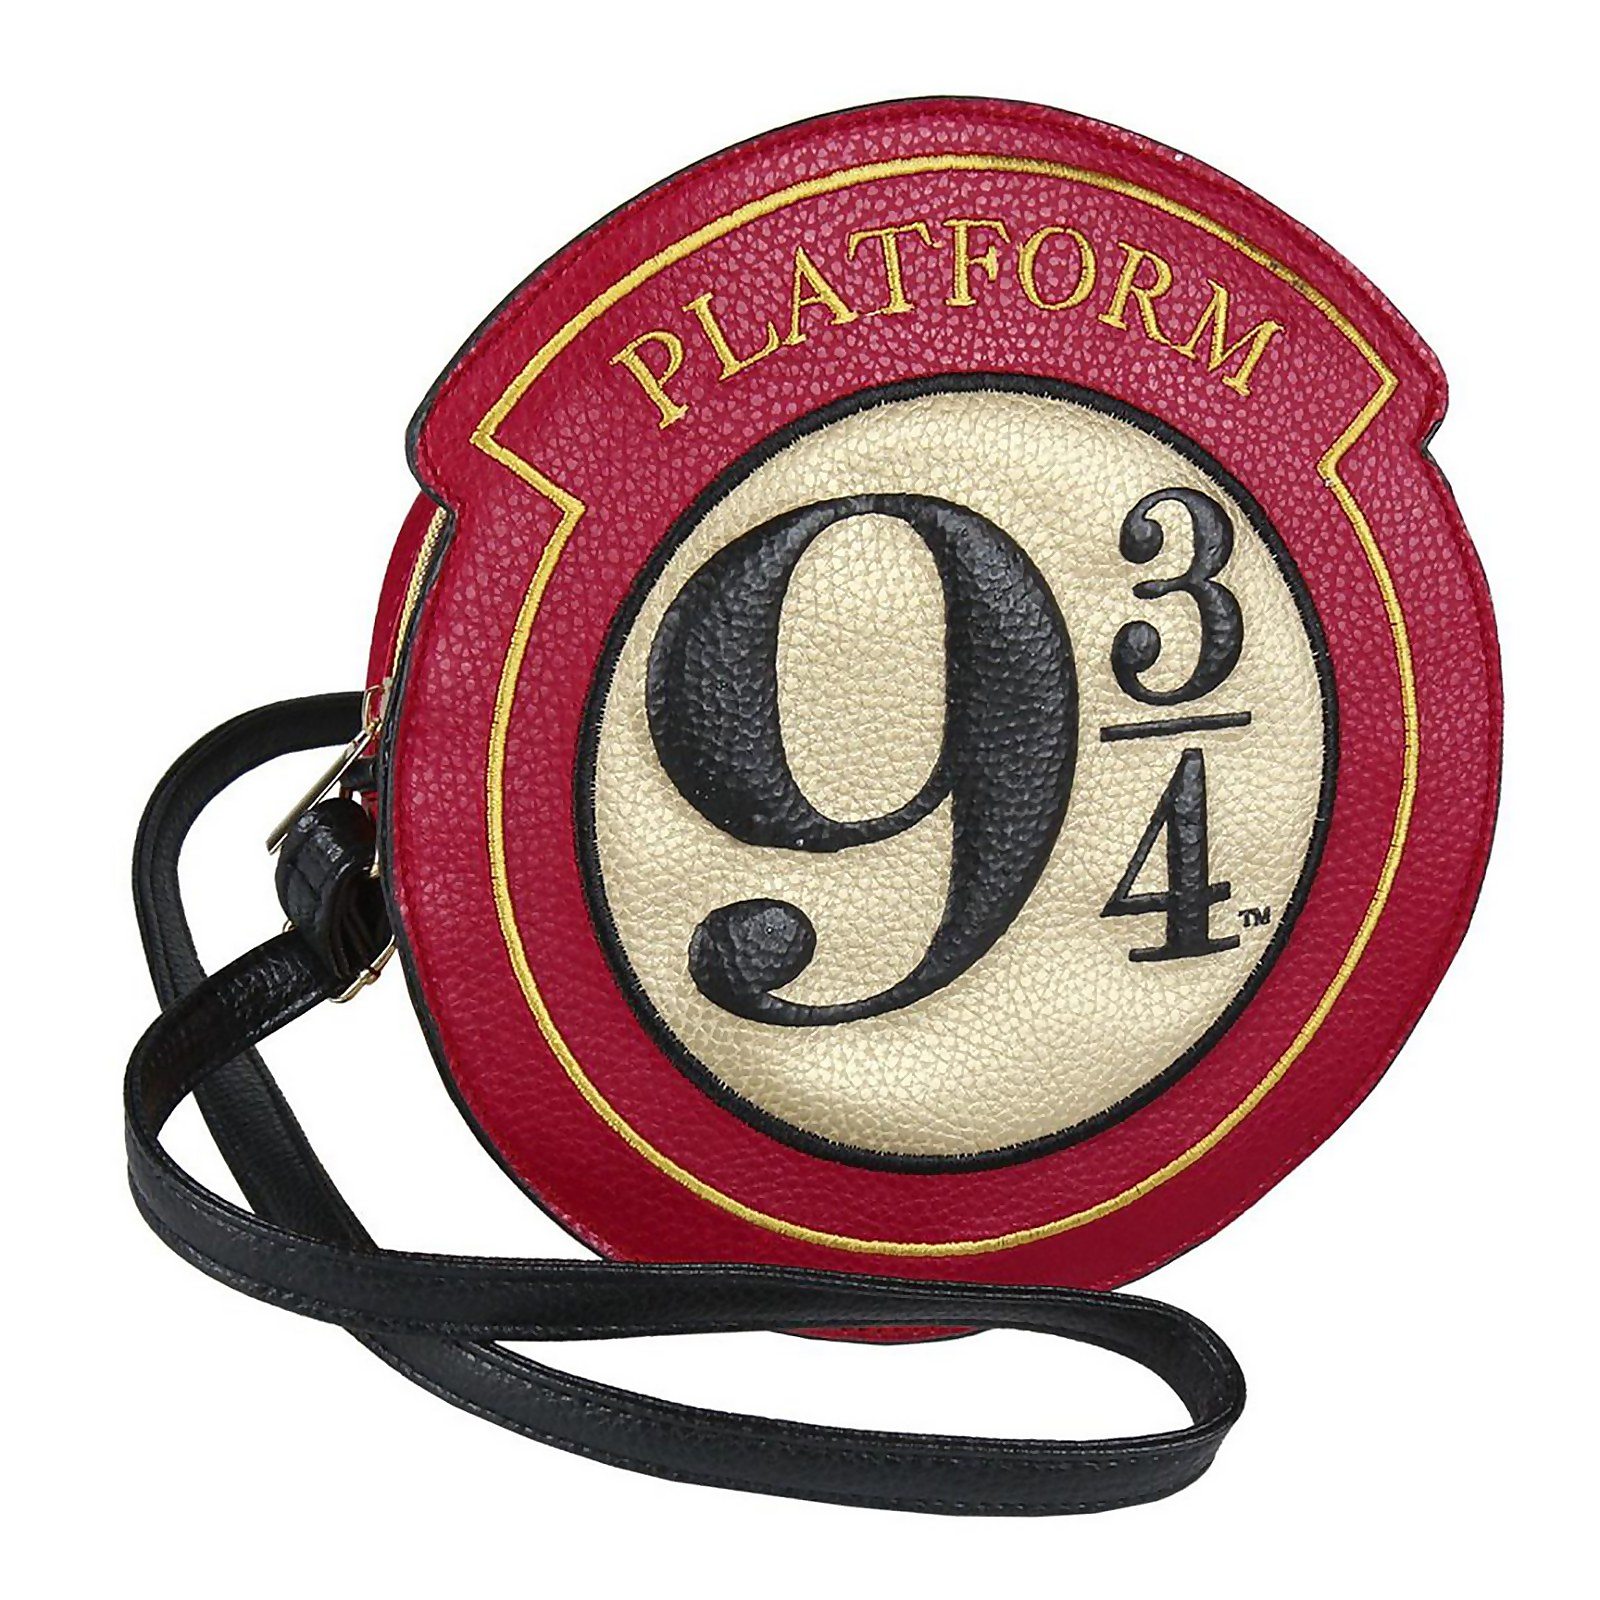 Harry Potter Platform 9 3/4 Faux Leather Shoulder Bag   Red